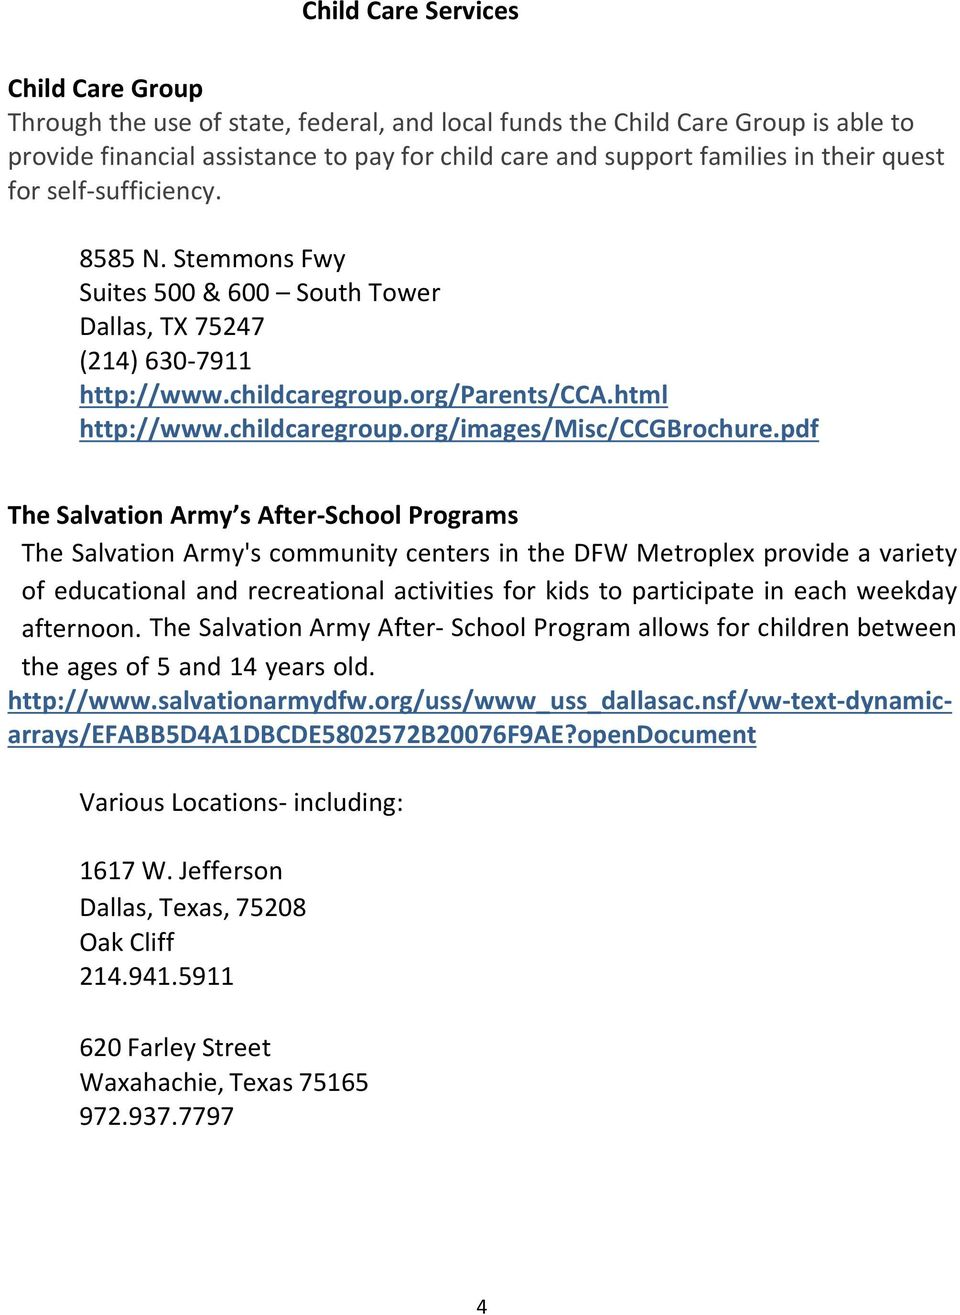 pdf The Salvation Army s After School Programs The Salvation Army's community centers in the DFW Metroplex provide a variety of educational and recreational activities for kids to participate in each